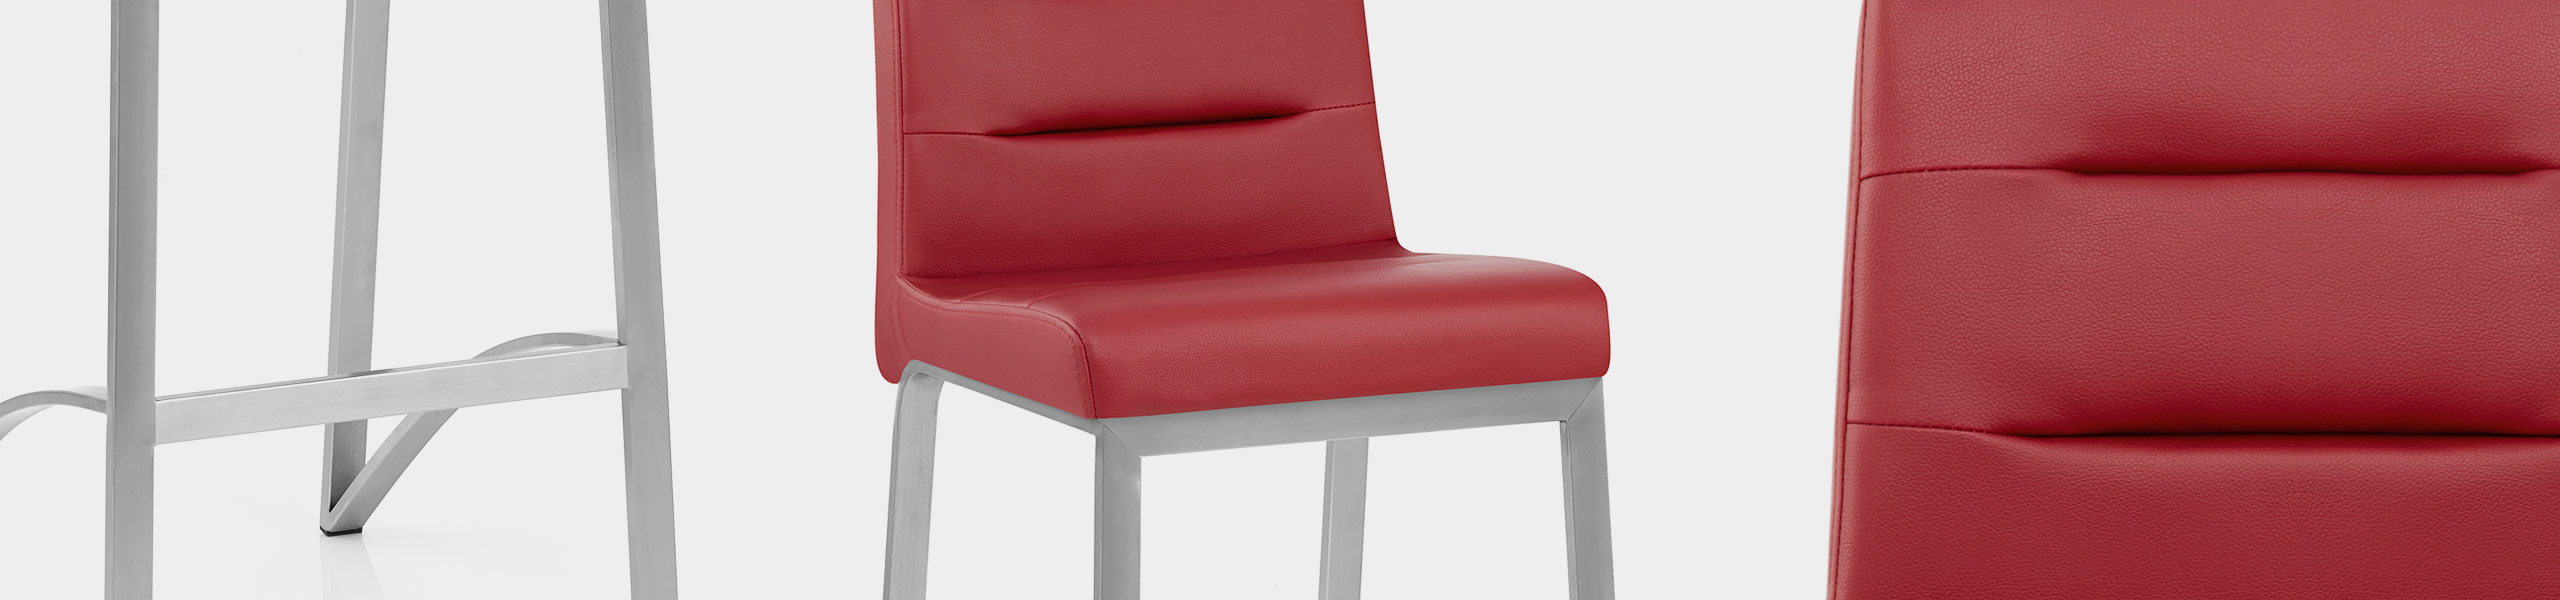 Stella Brushed Steel Stool Red Video Banner